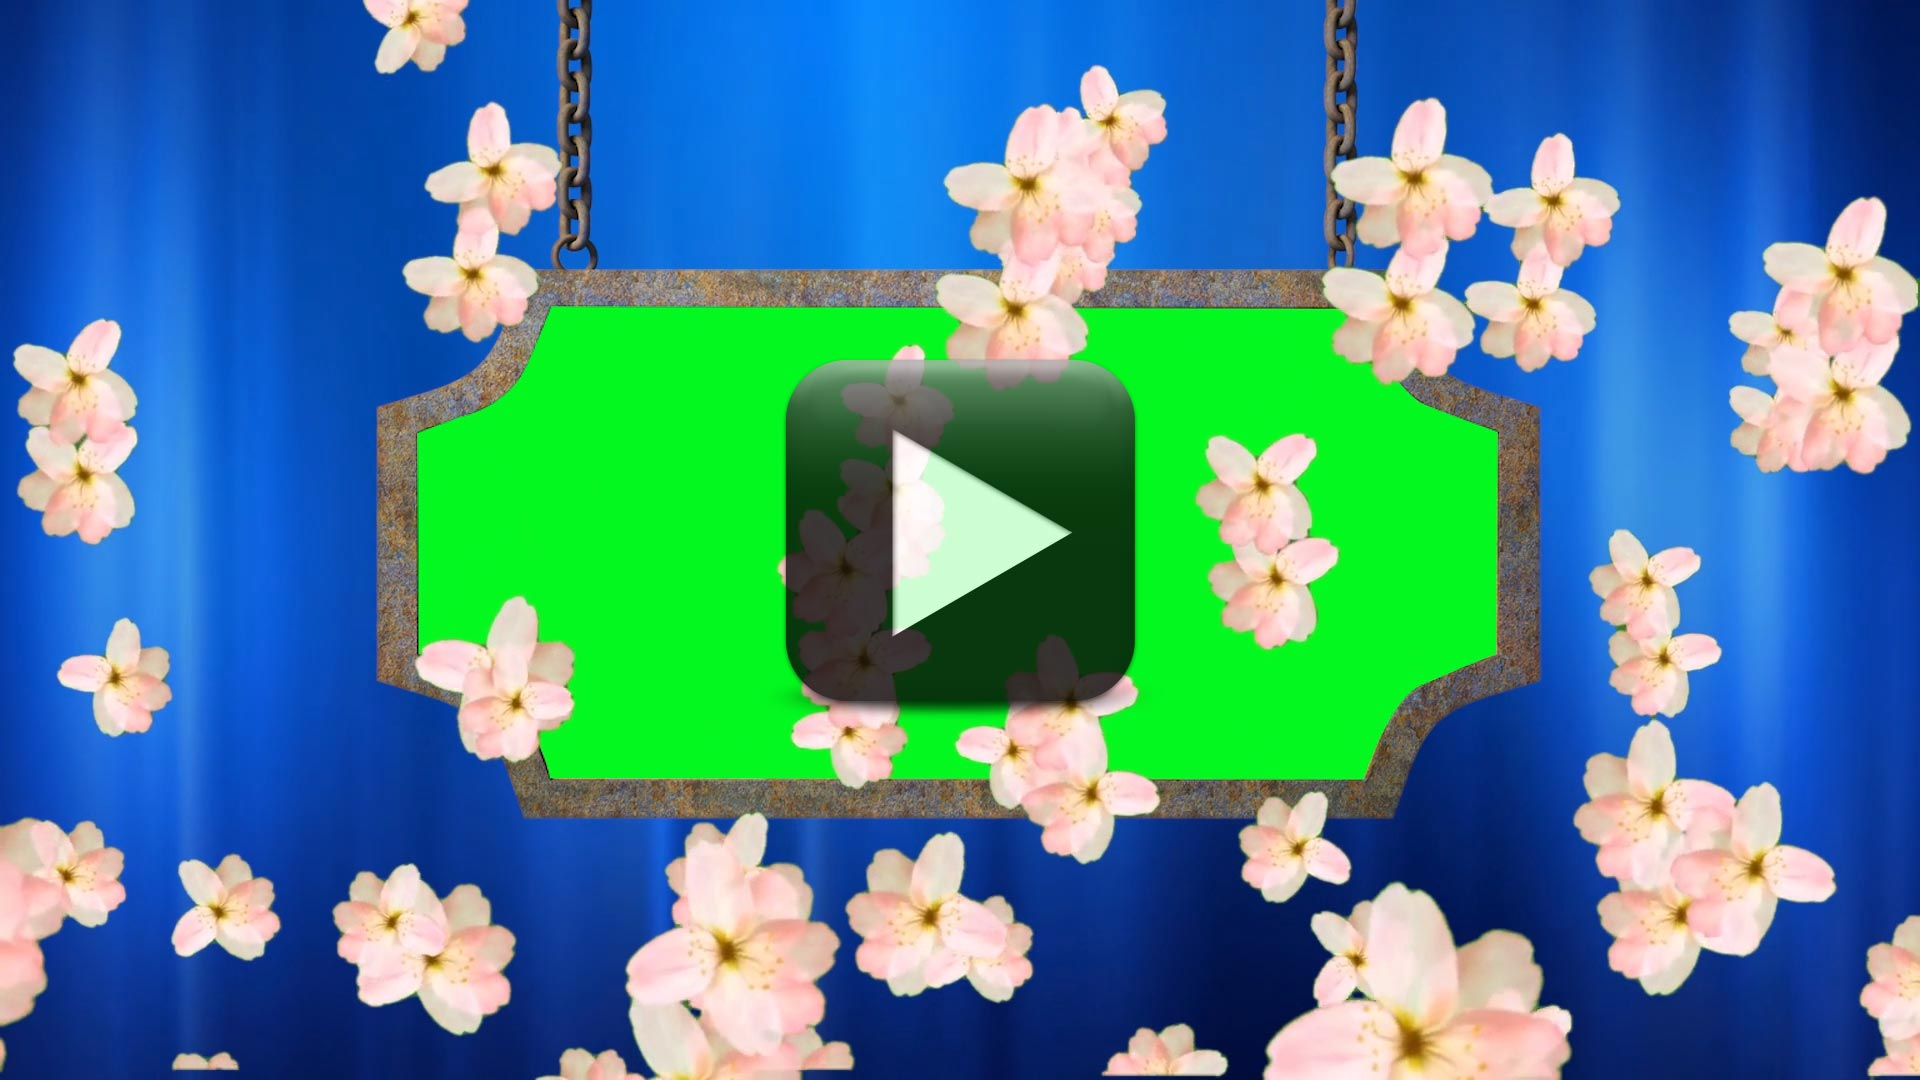 Wedding Video Background-Animated Flowers Falling